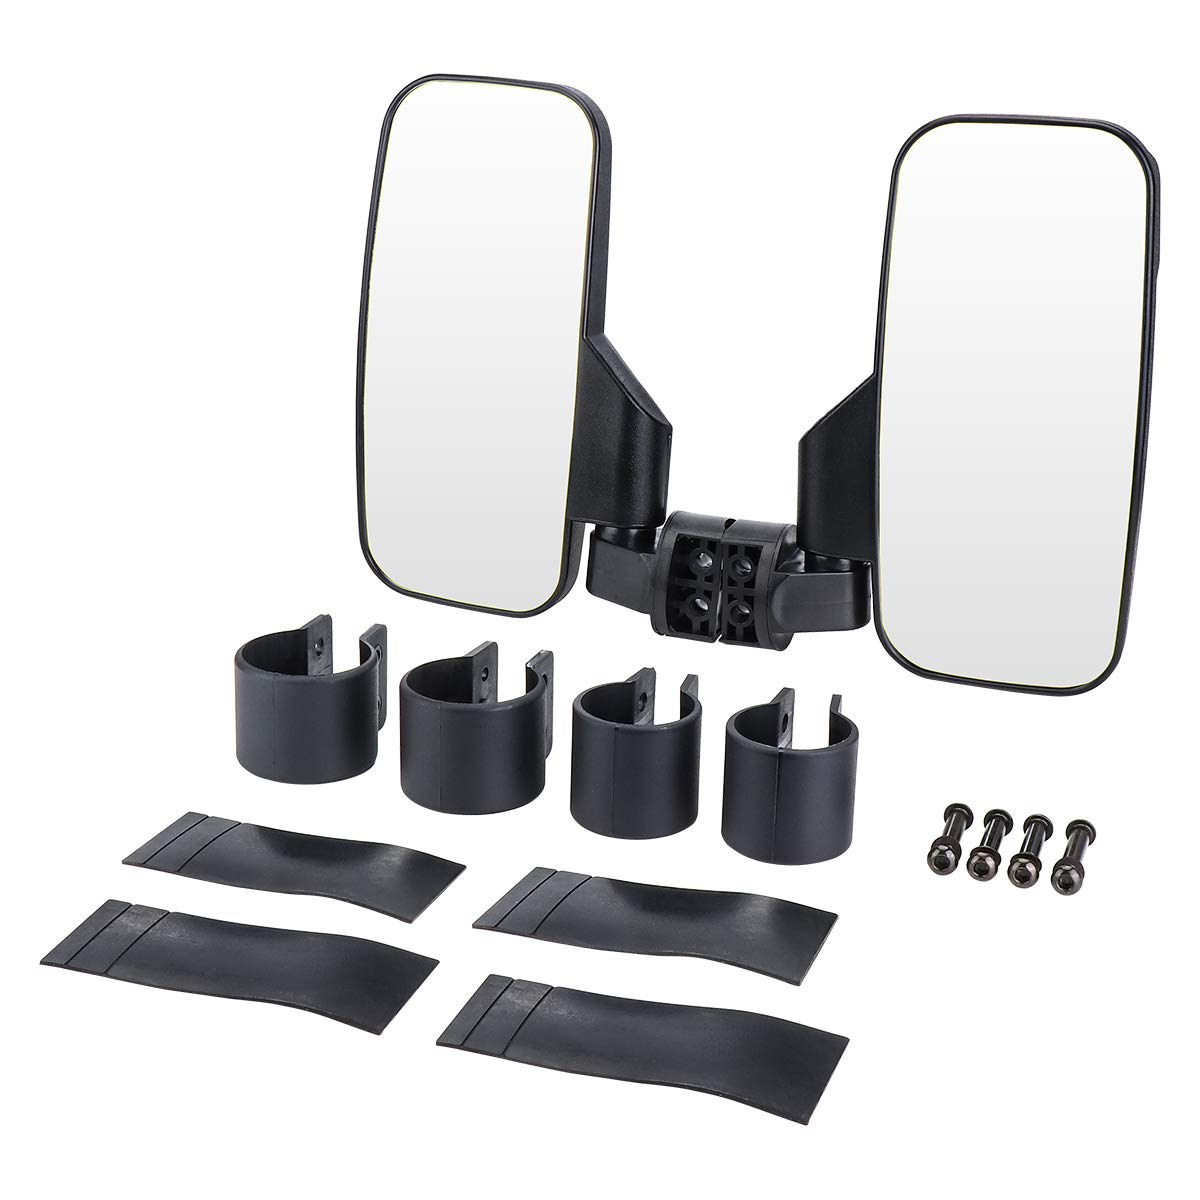 UTV Mirror Set ISSYZONE 15 Wide High-Definition UTV Rear View Center Mirror /& Rear View Side Mirror with 1.75-2 Inch Mount for Polaris RZR